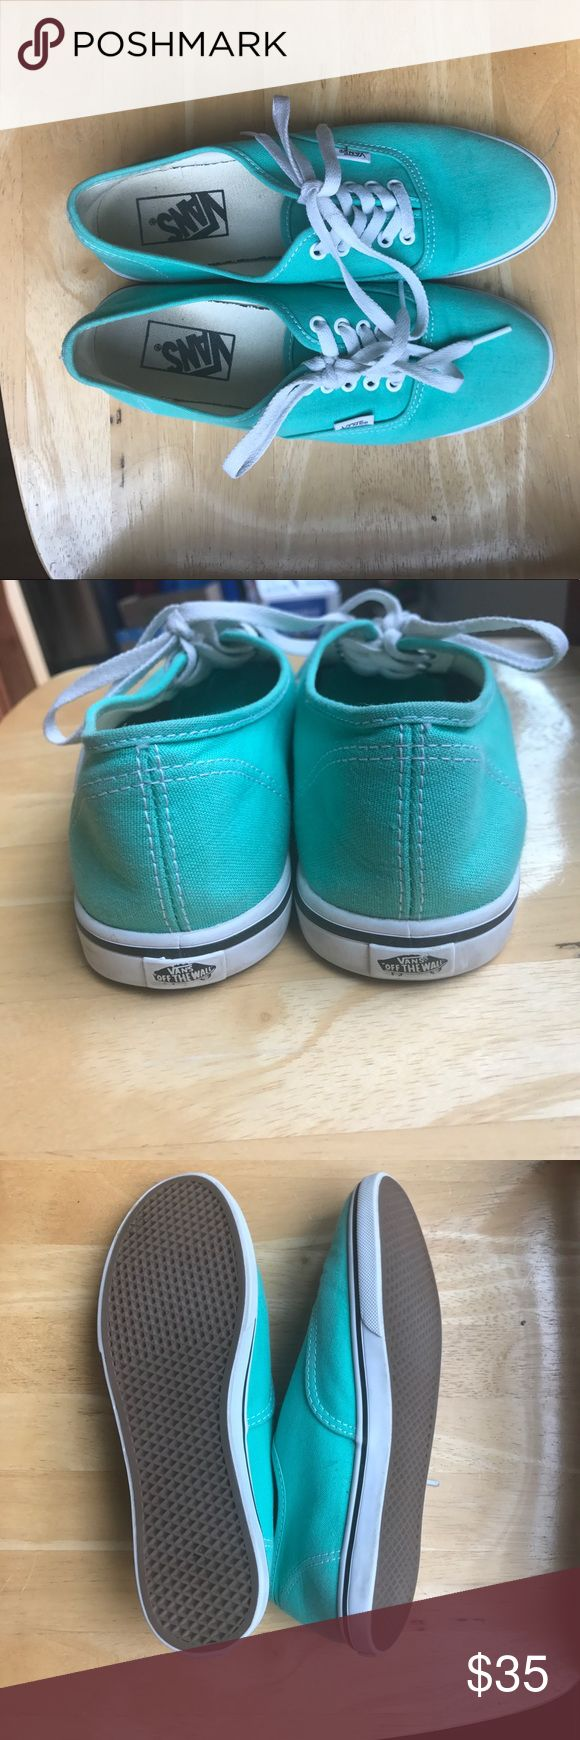 Vans Authentic Lo Pro- Teal Teal Vans Authentic Lo Pro. Worn twice. Laces and sides are still white. Excellent condition. Vans Shoes Sneakers